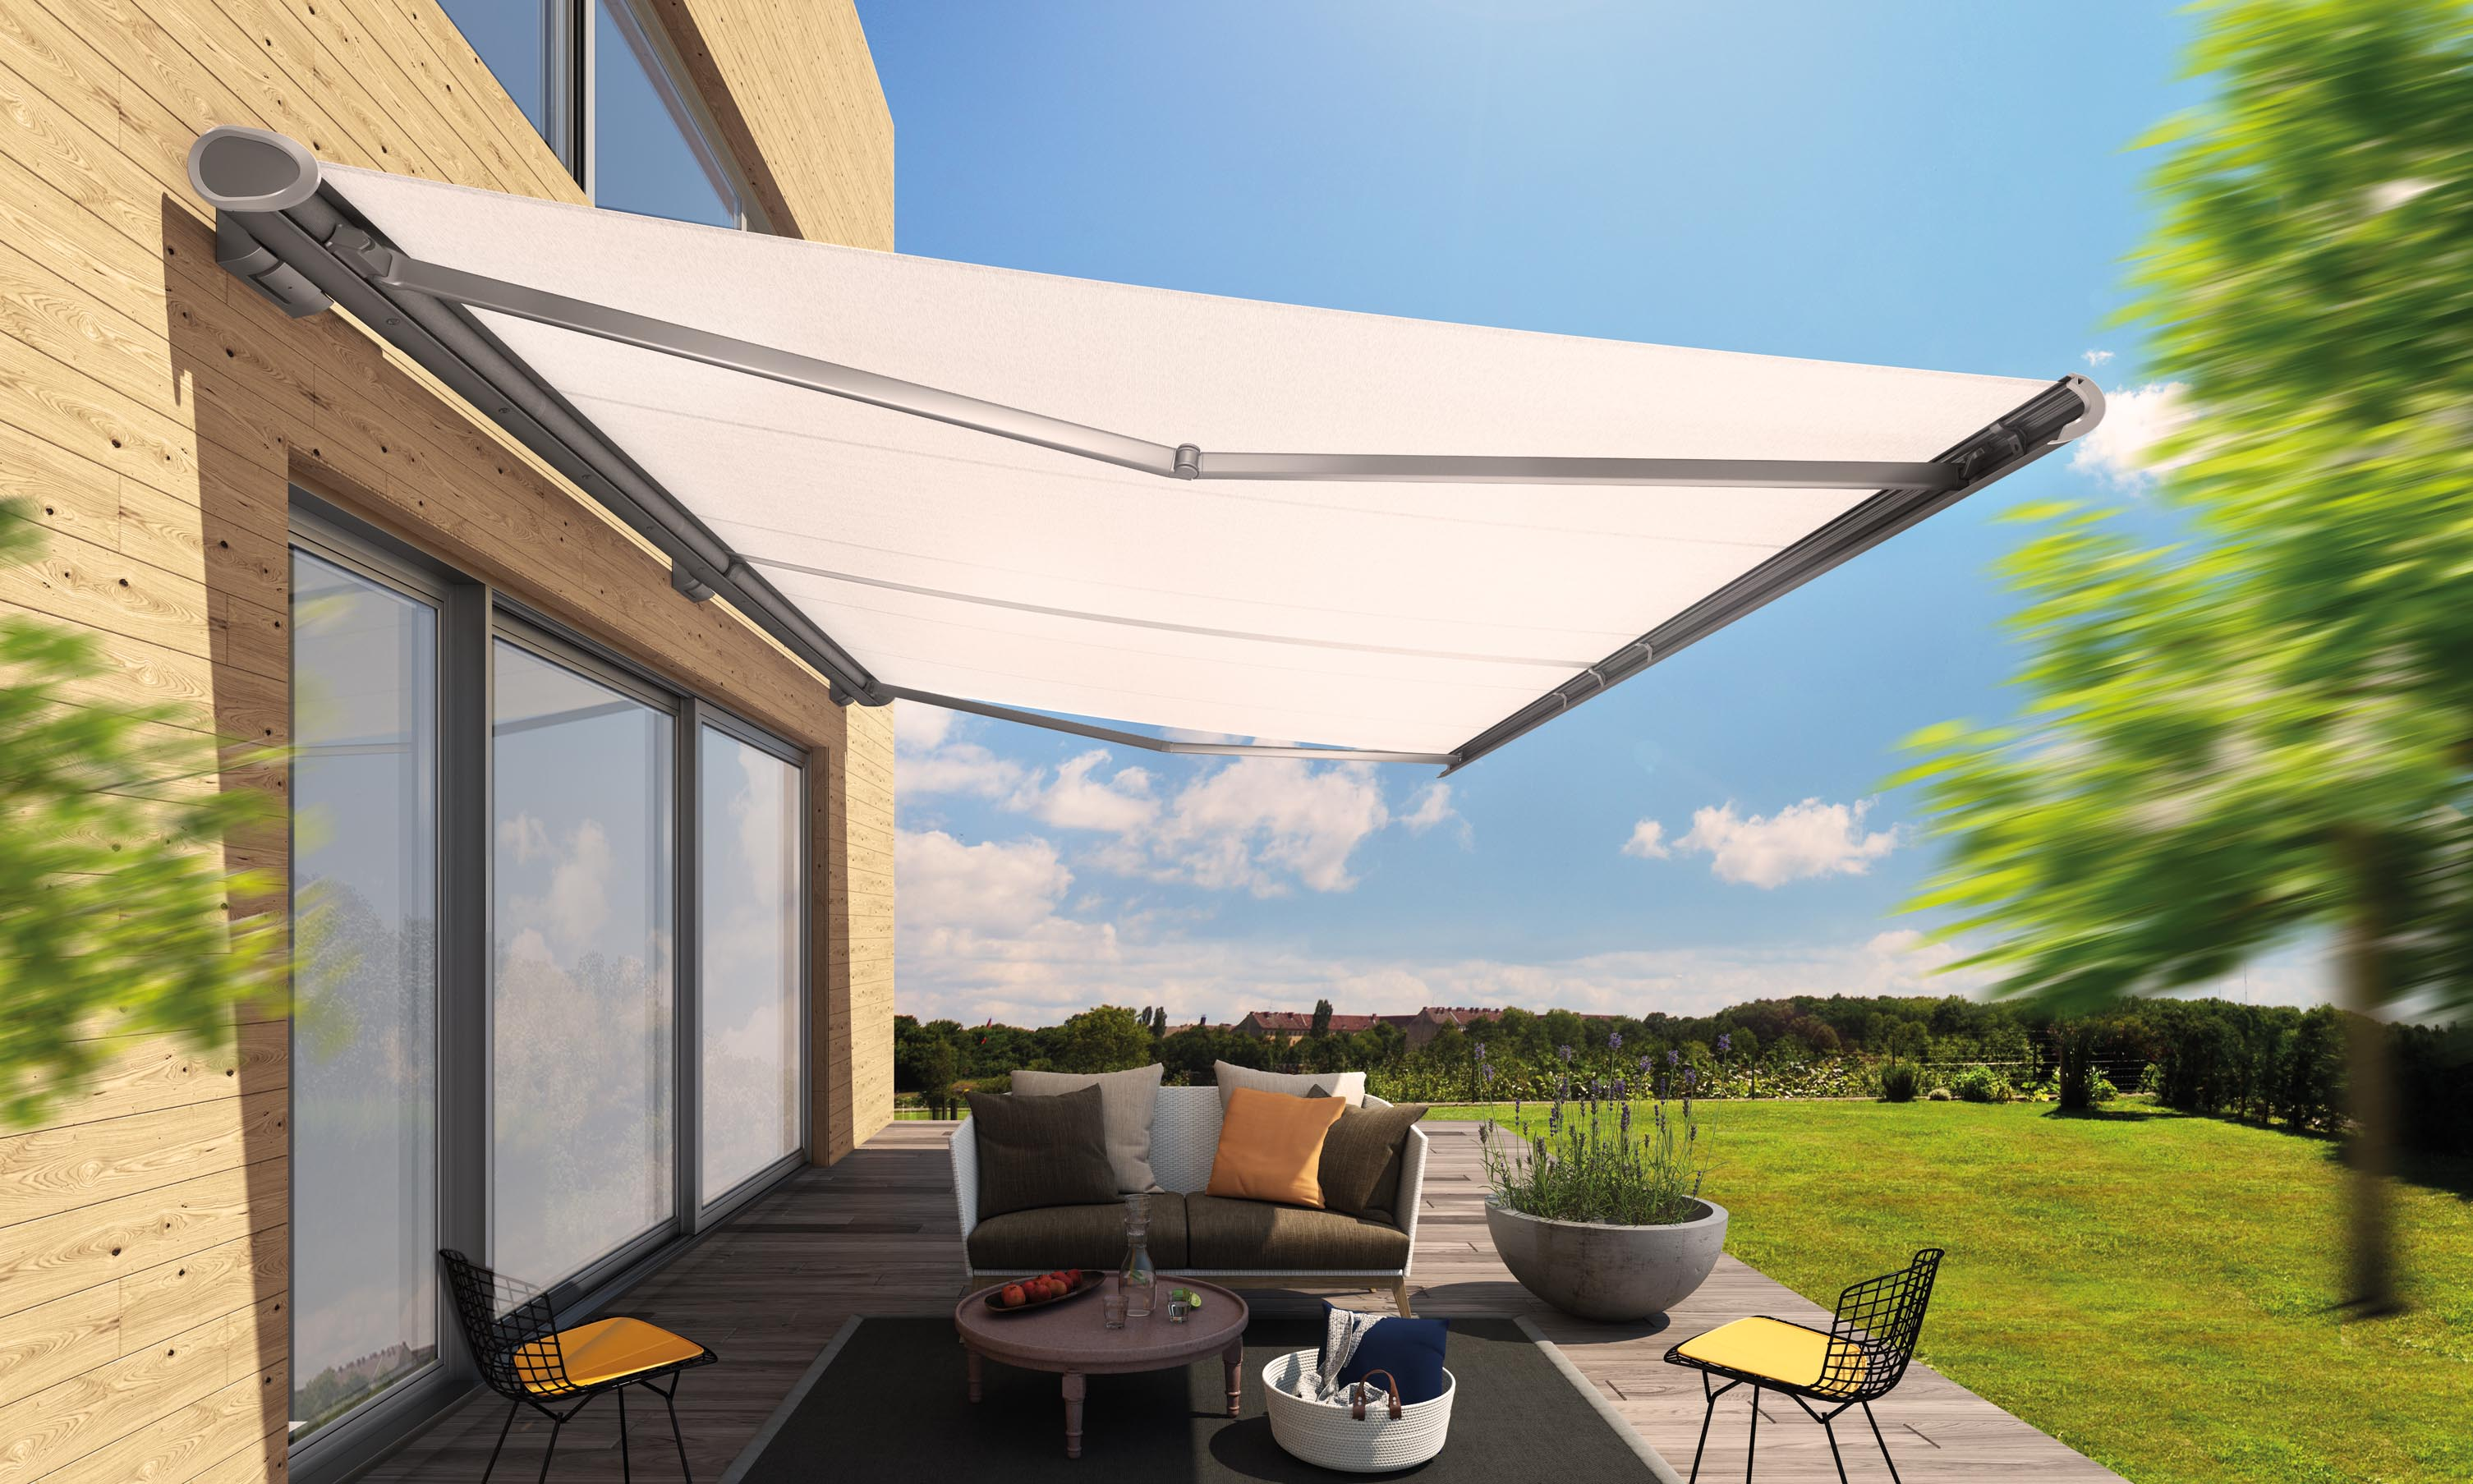 A side view of the Semin Life Awning